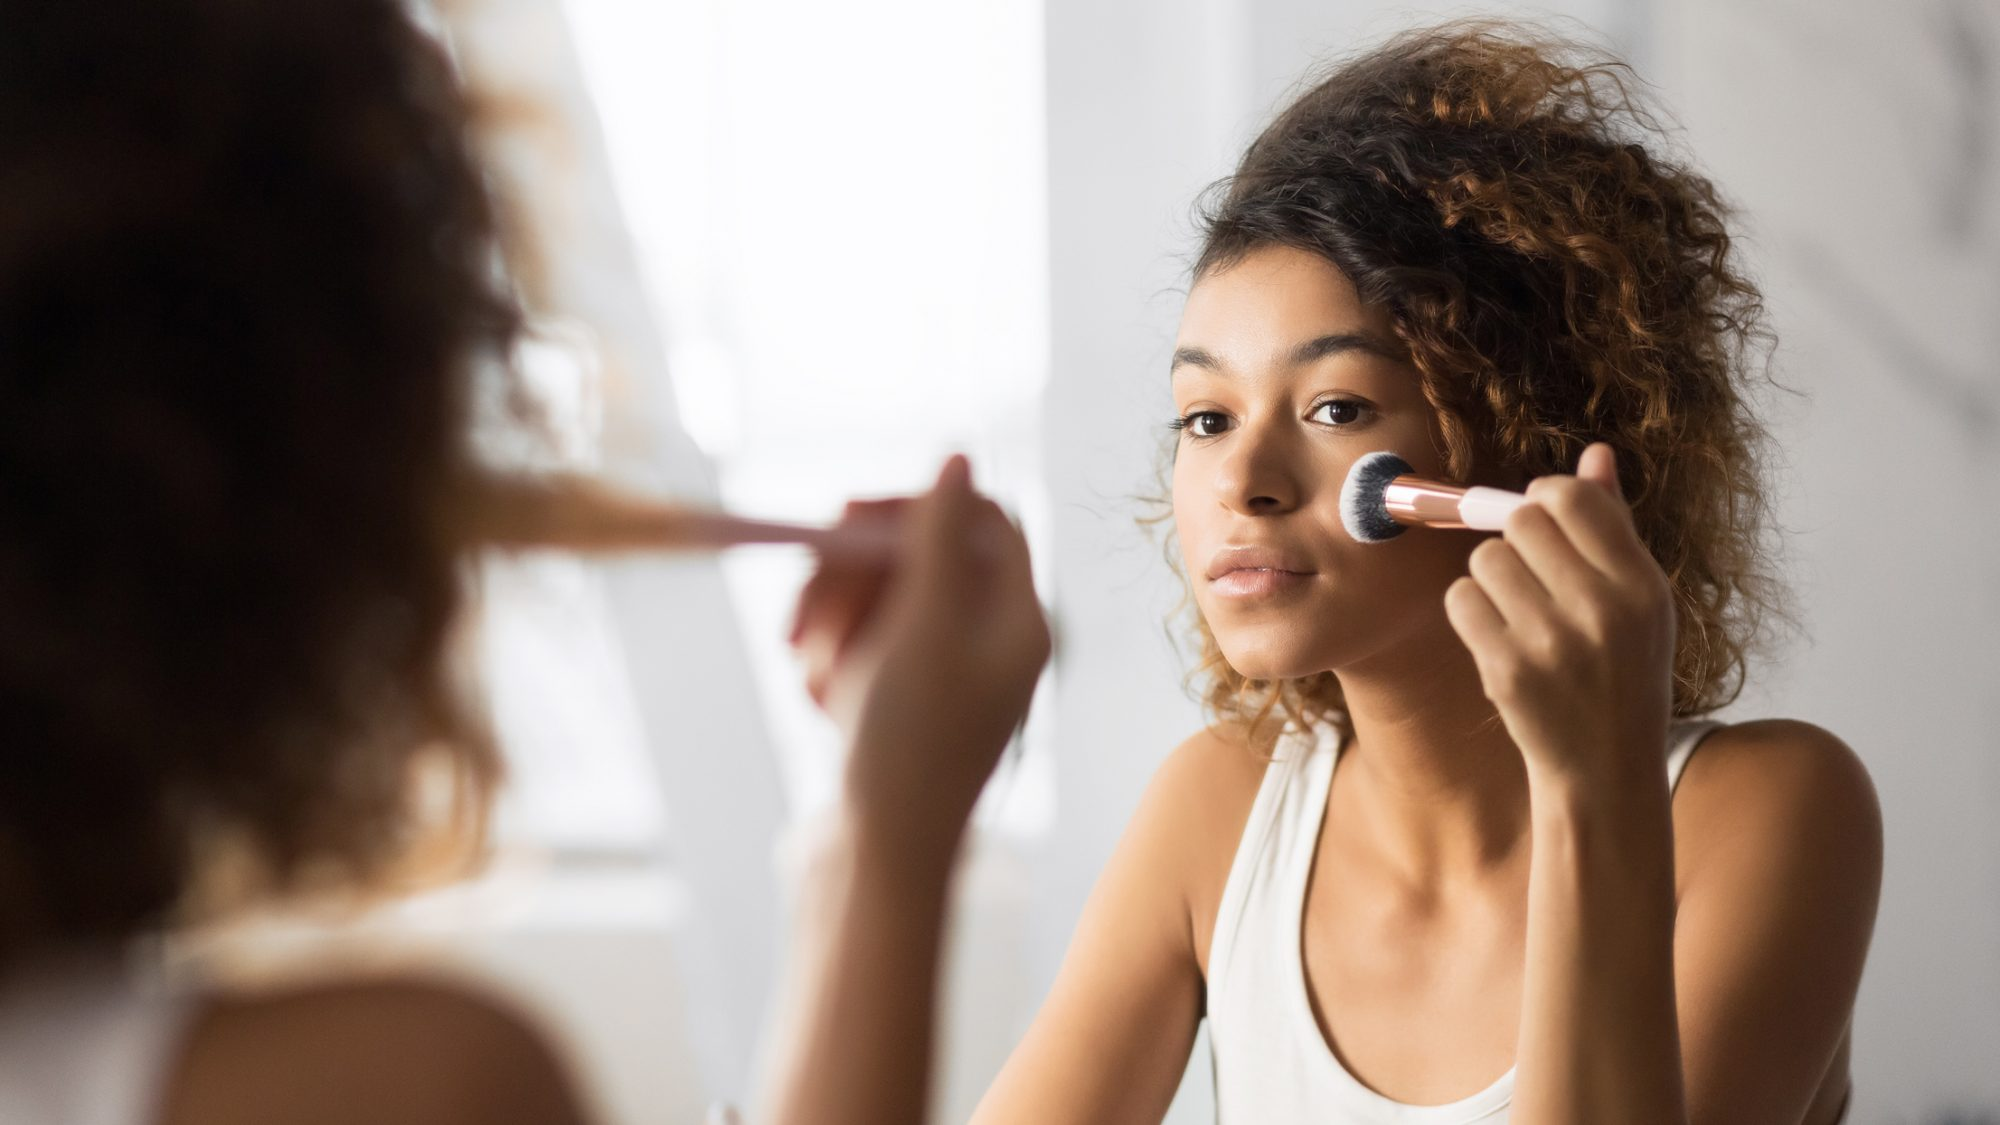 woman applying foundation with makeup brush in mirror